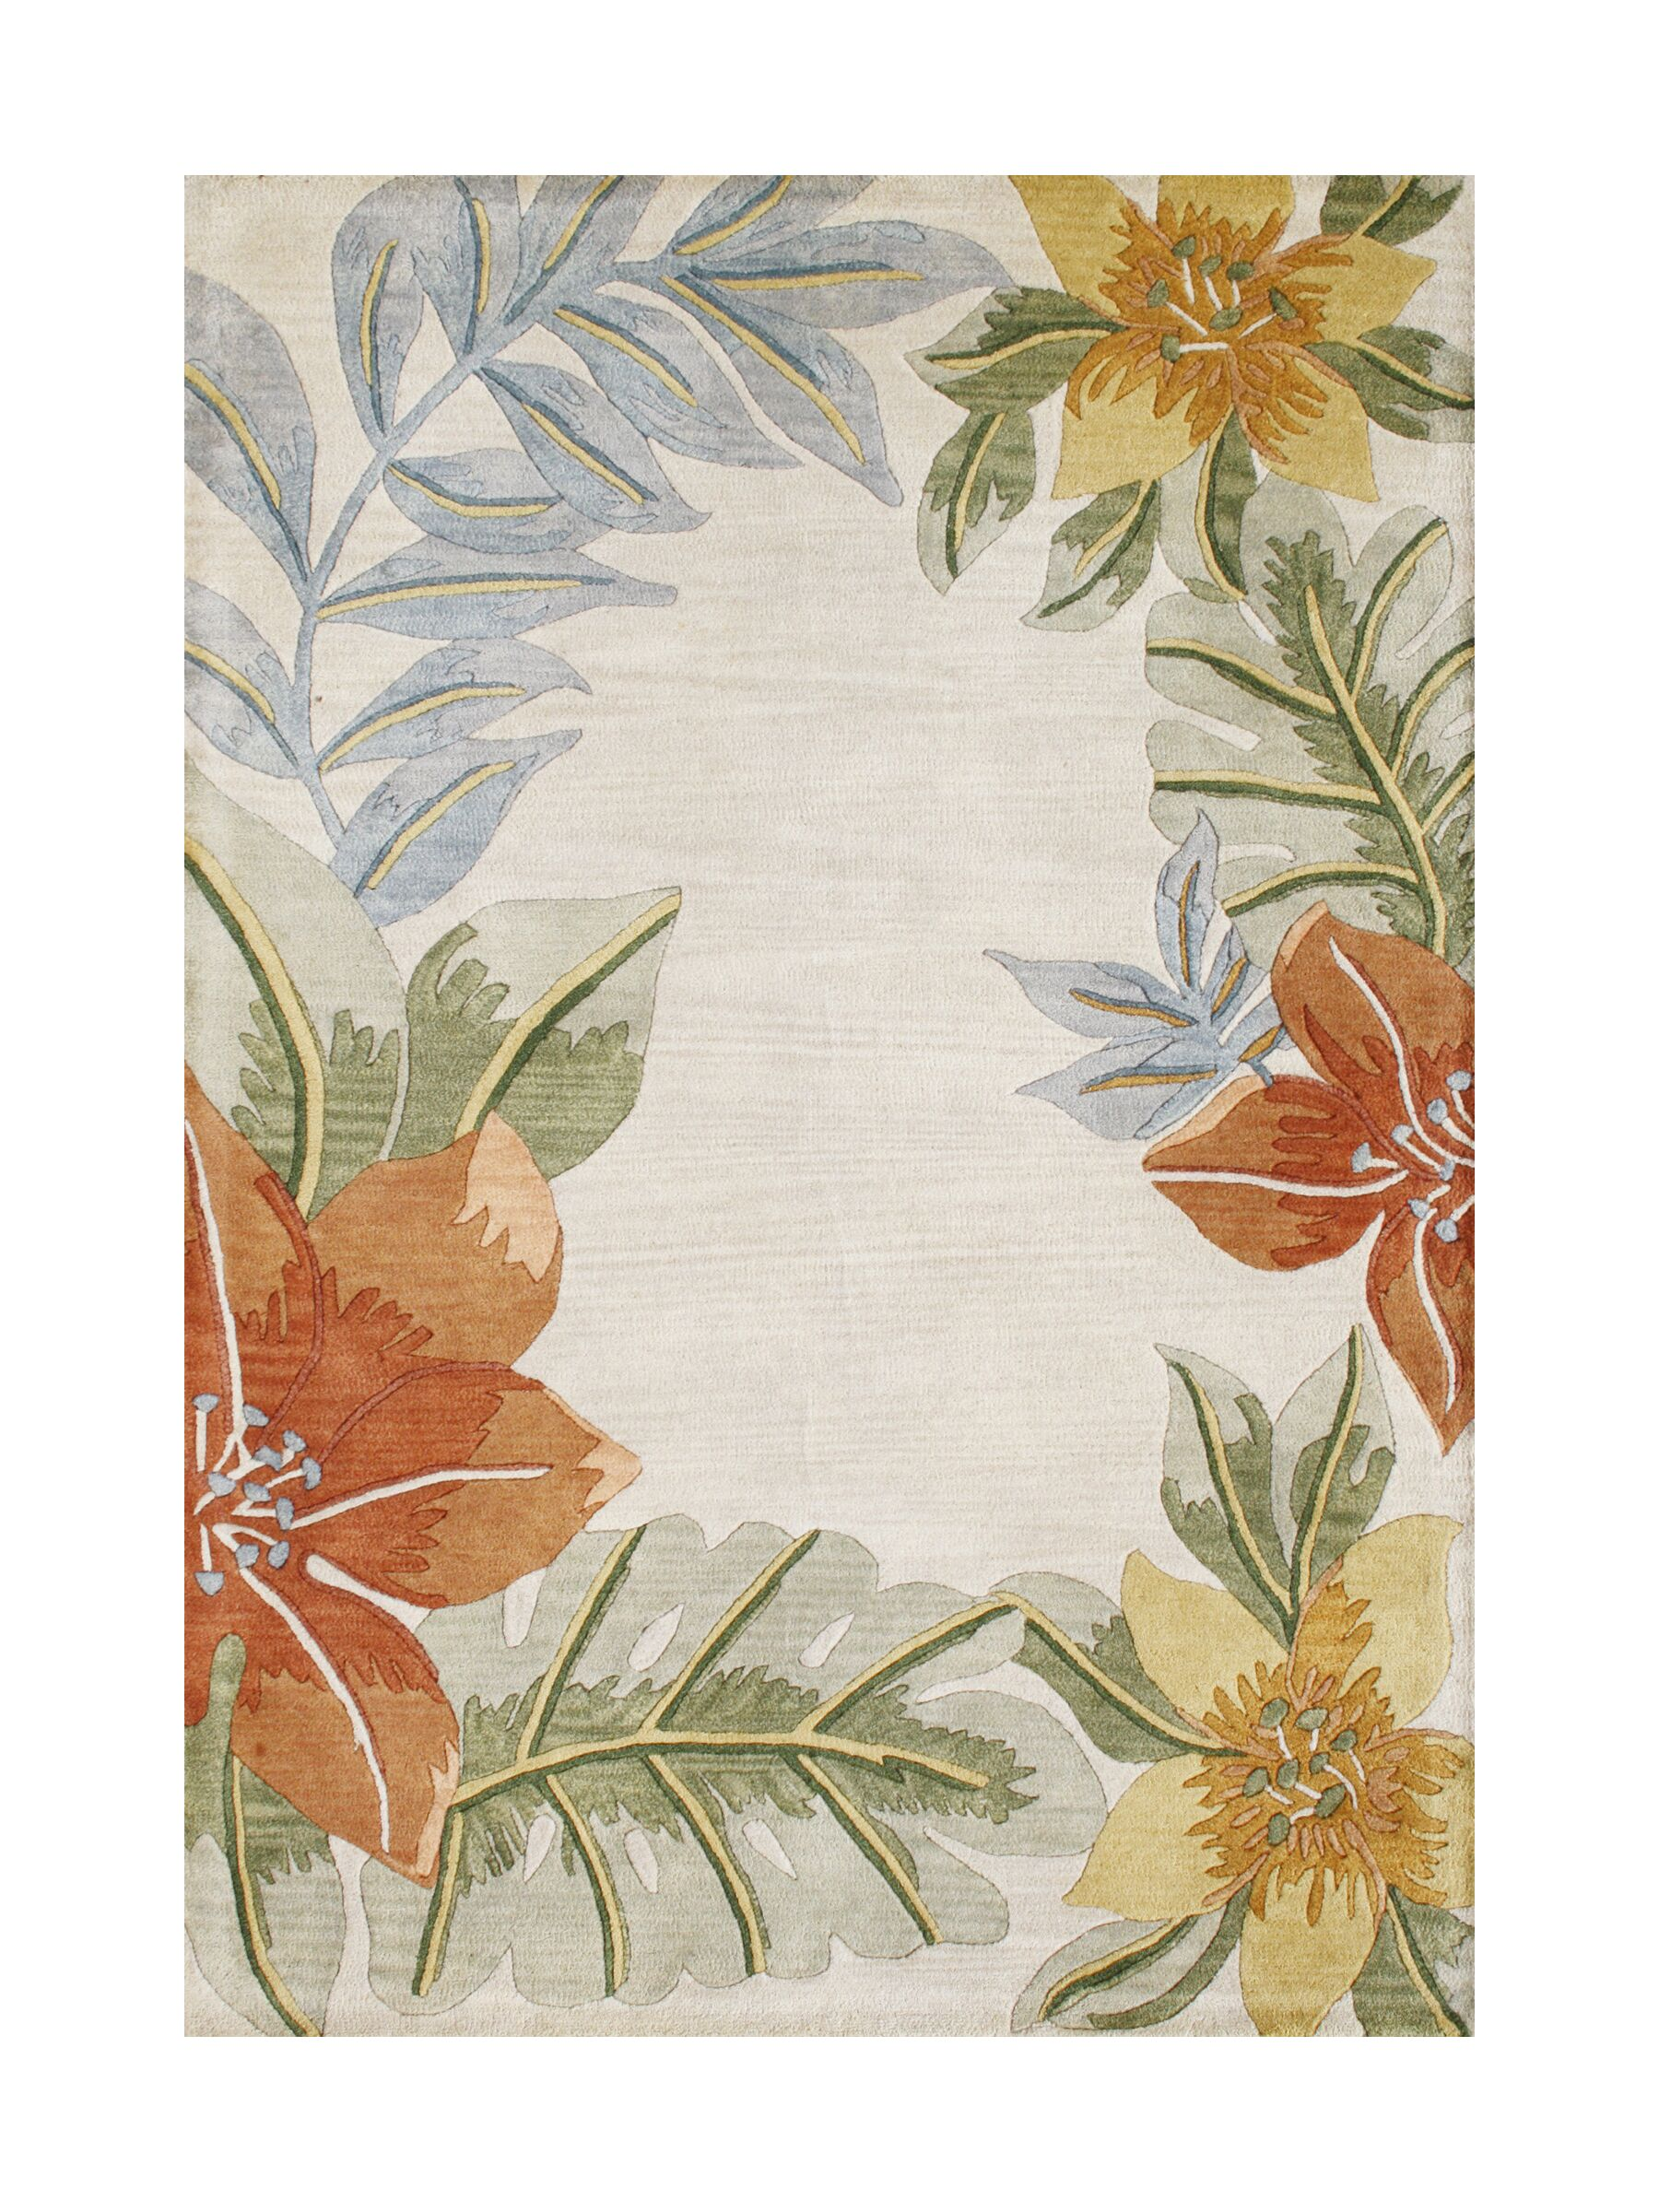 Peary Hand-Tufted Light Gray Area Rug Rug Size: 8' x 10'